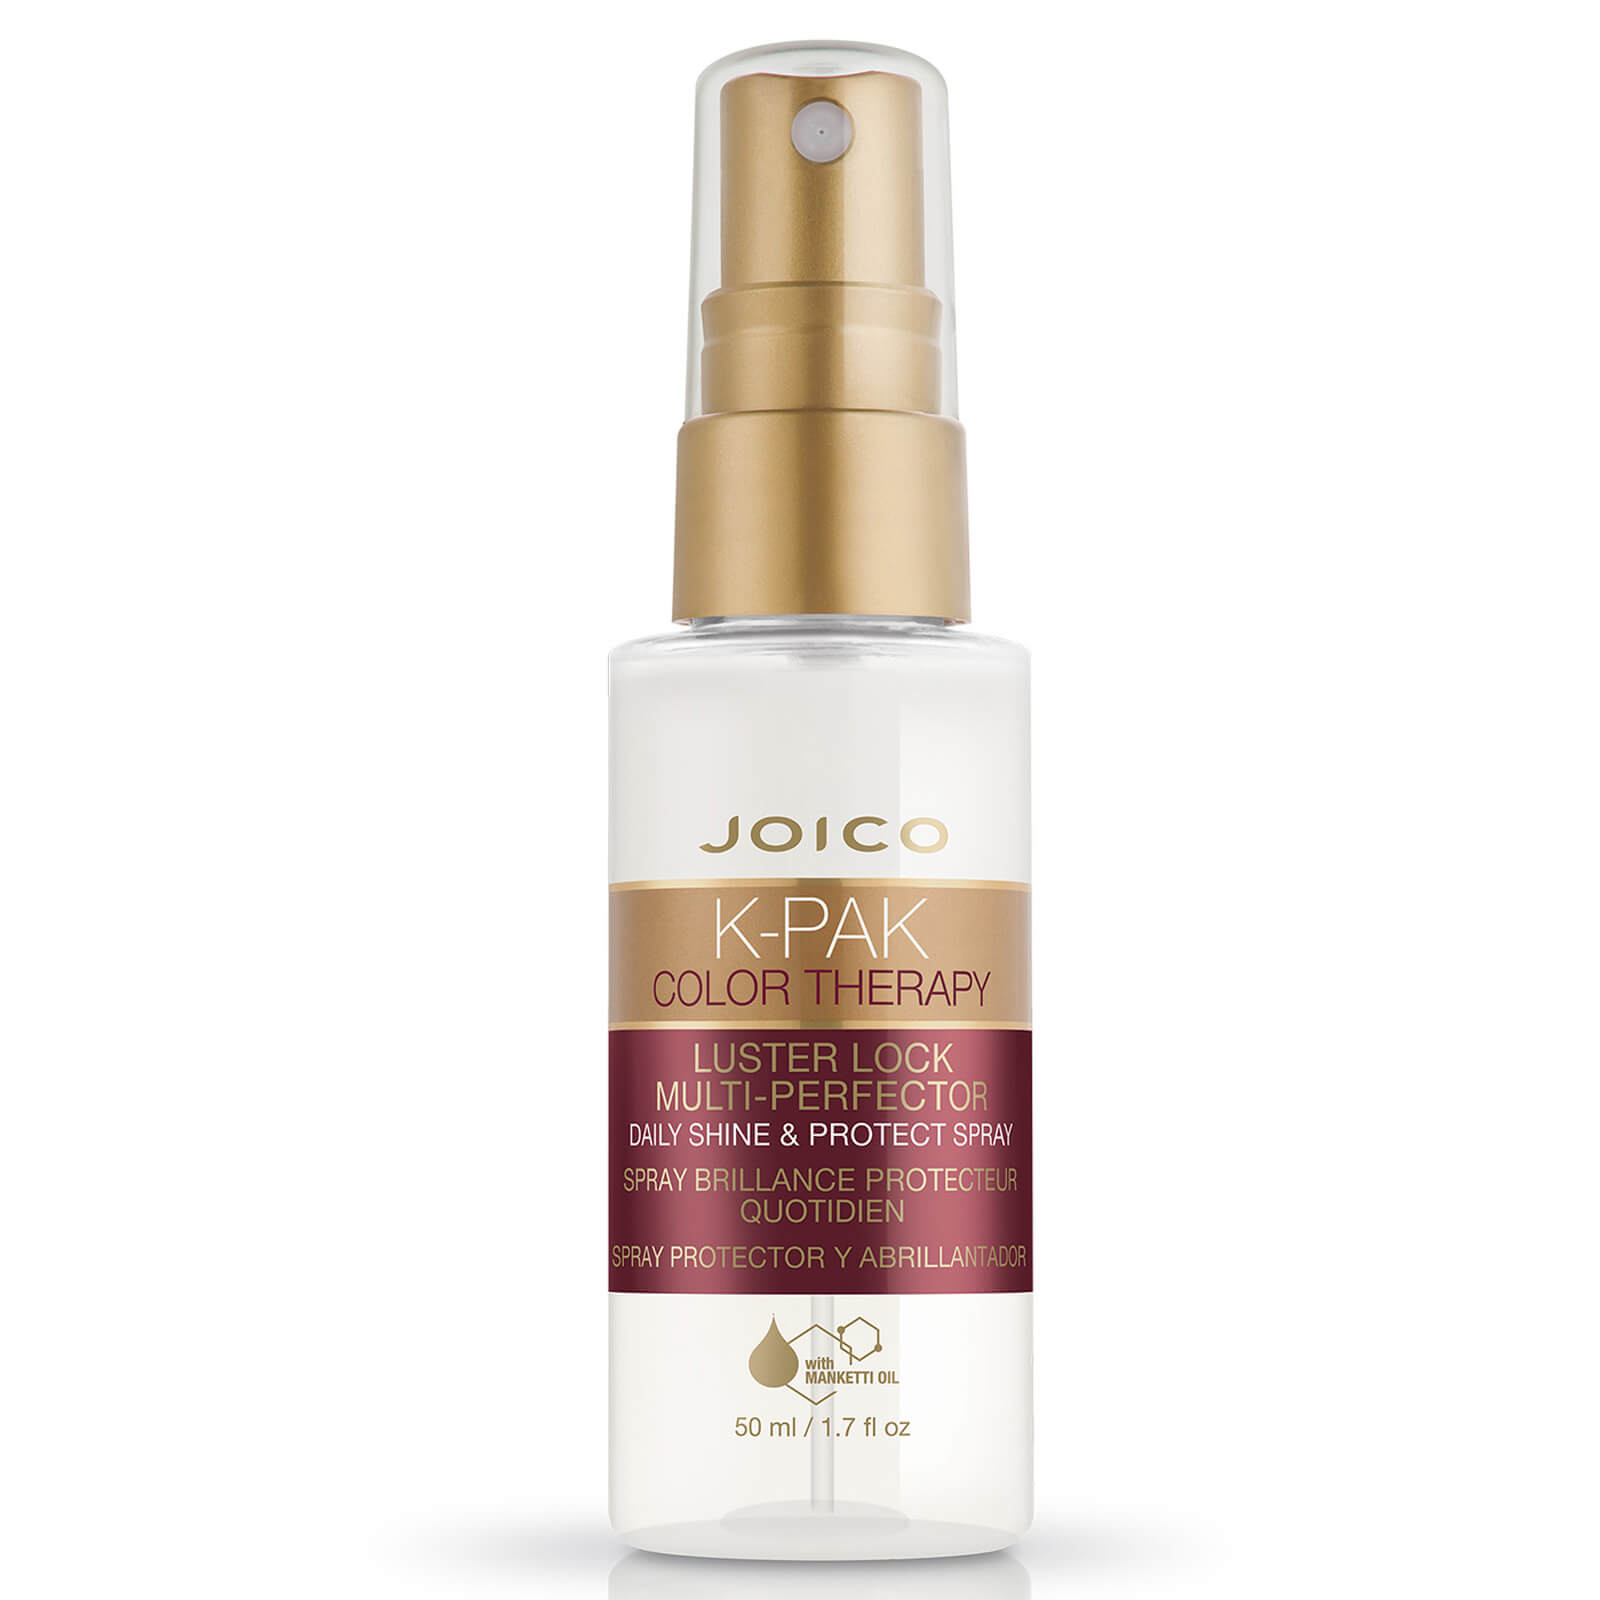 JOICO K-PAk Color Therapy Luster Lock Multi Perfector